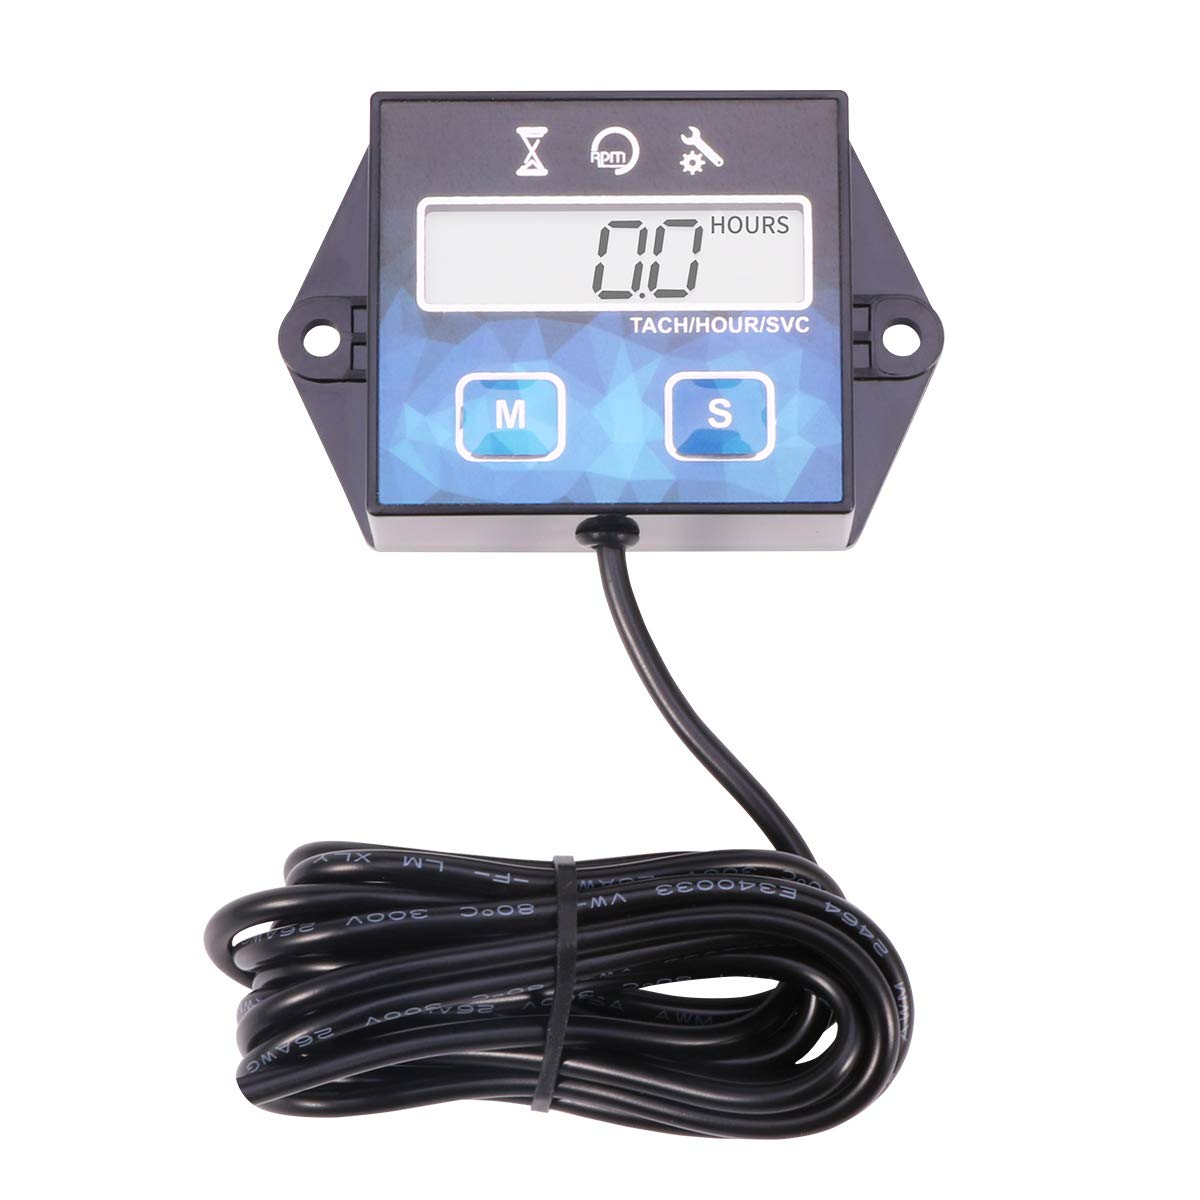 Tacómetro digital Tach para generador de barco pequeño de 2/4 tiempos, cortacésped, motocicleta, motocross, quads, Replaceable Battery without Backlit